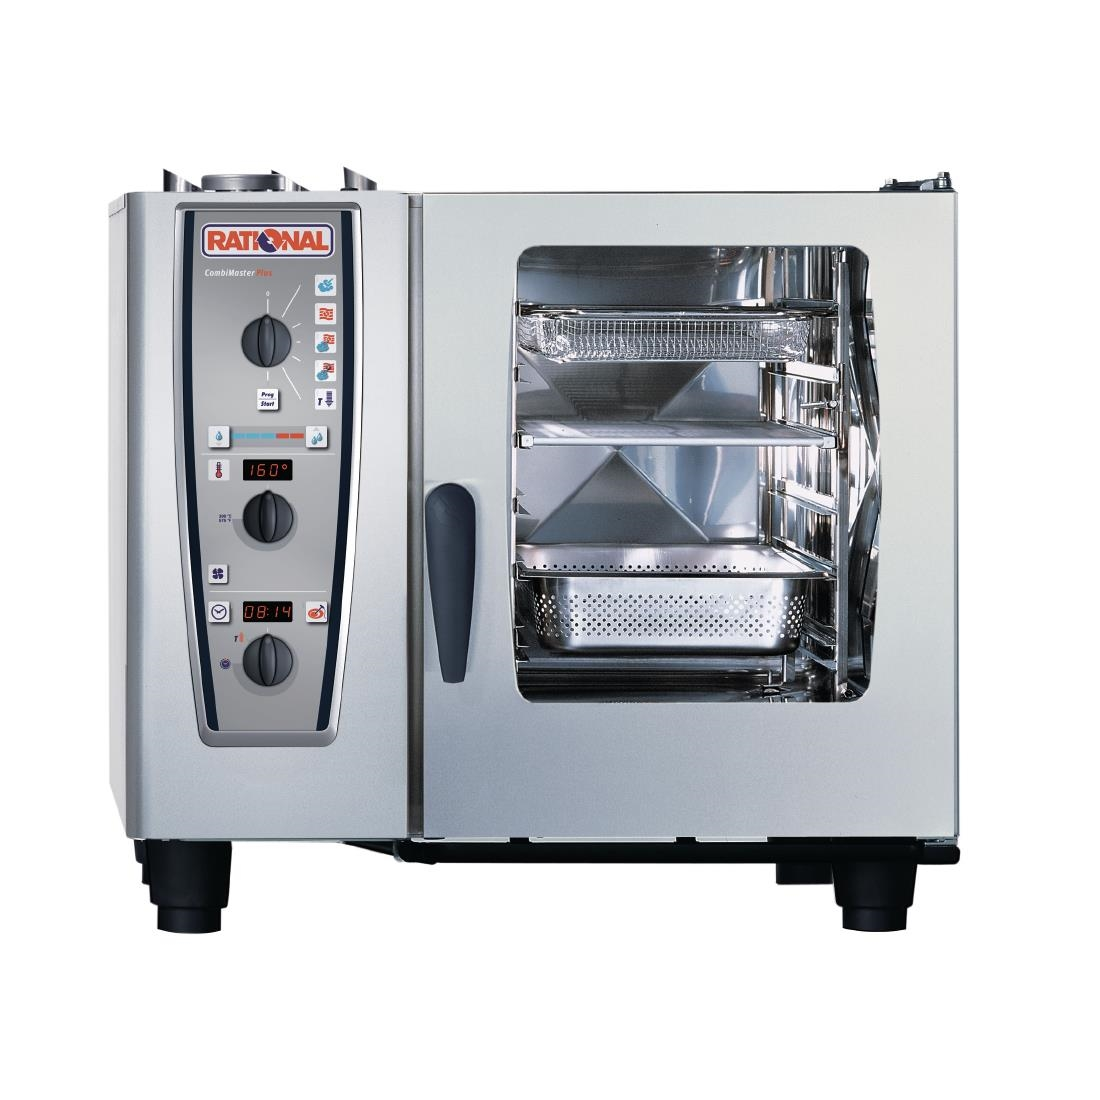 Rational Combimaster Oven Plus Oven 61 Electric CMP61E